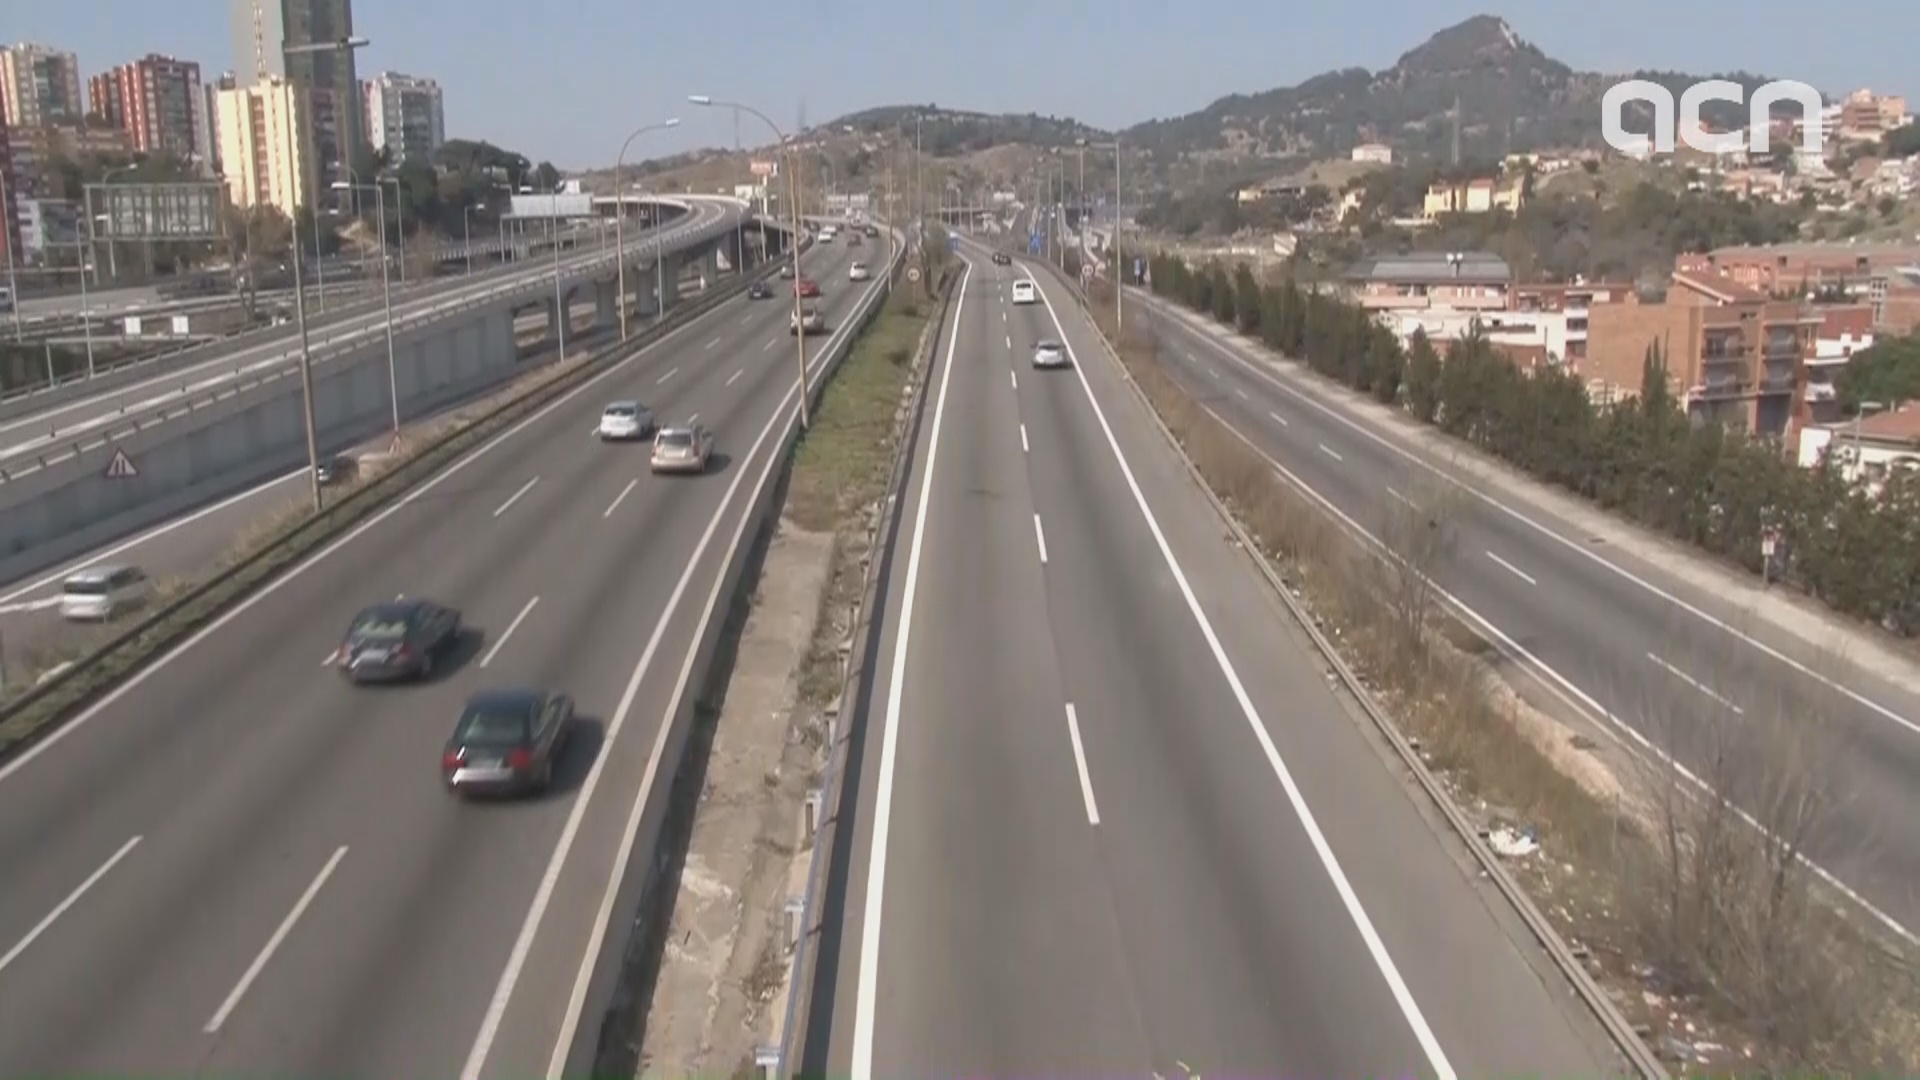 New measures against pollution to be implemented in Barcelona on Friday